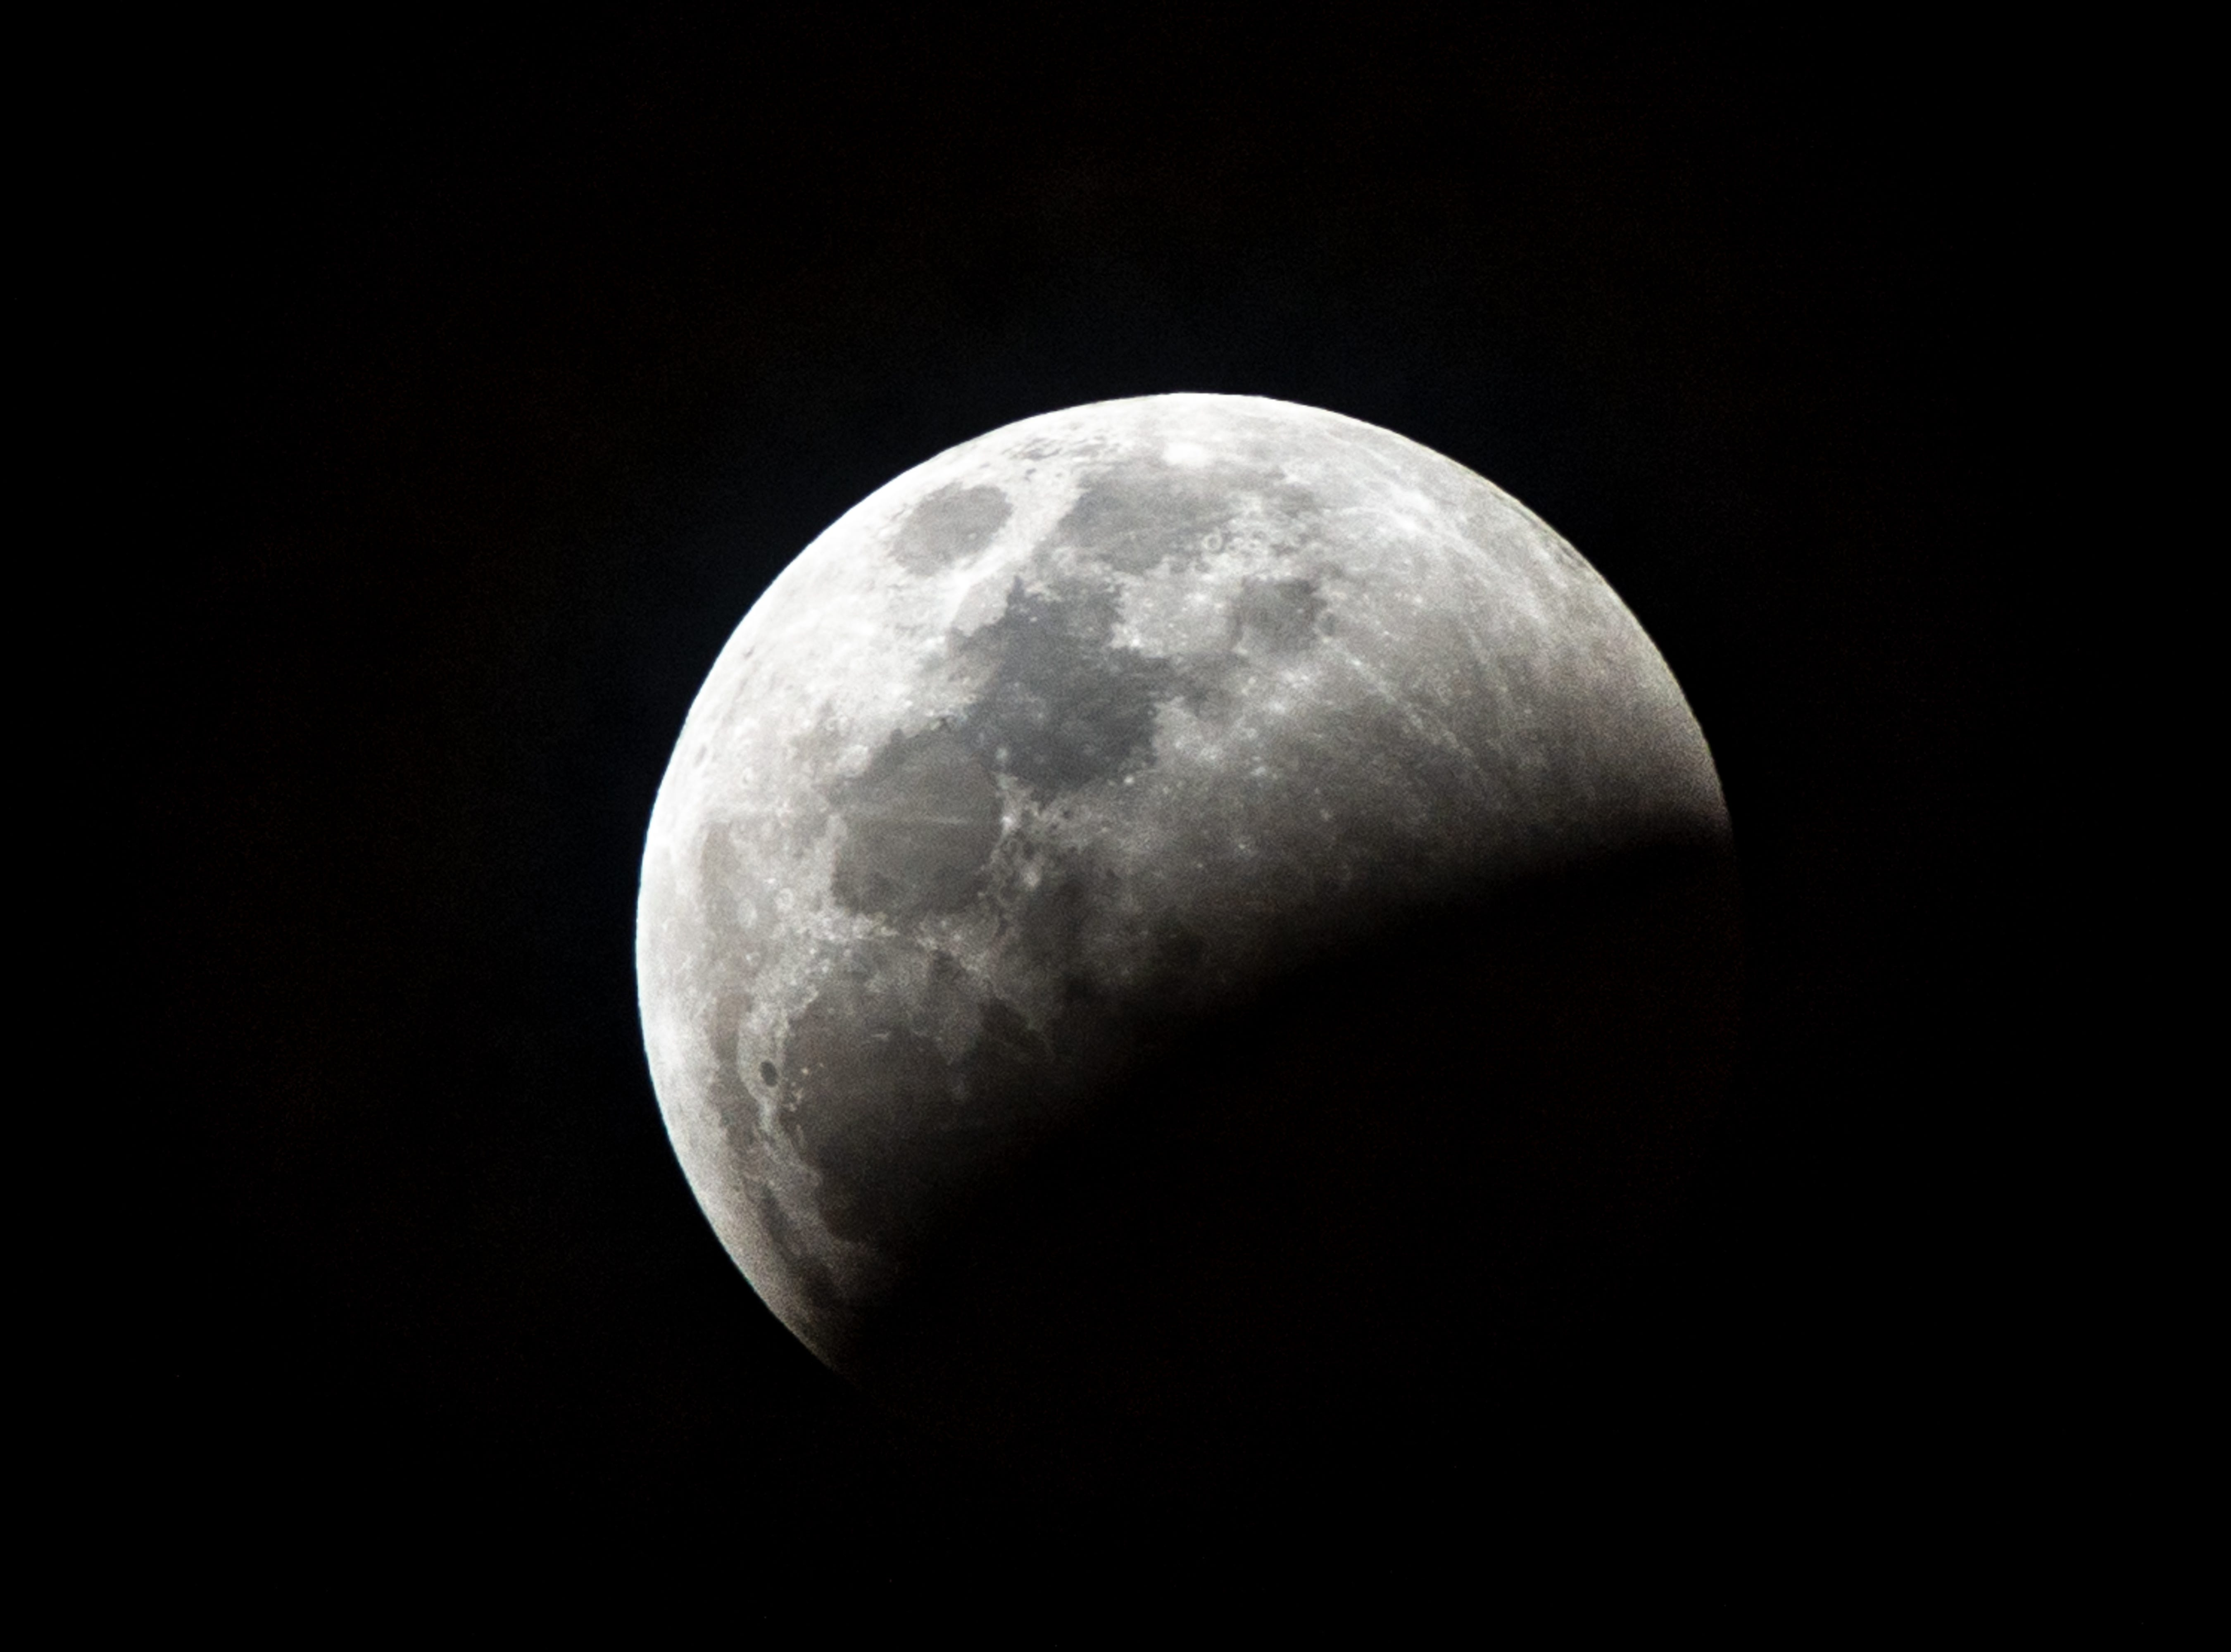 The so-called Super Blood Wolf Moon rises as a total lunar eclipse begins on Sunday January 20, 2019, in Miami, Florida. - The January 21 total lunar eclipse will be the last one until May 2021, and the last one visible from the United States until 2022. (Photo by Gaston De Cardenas / AFP)